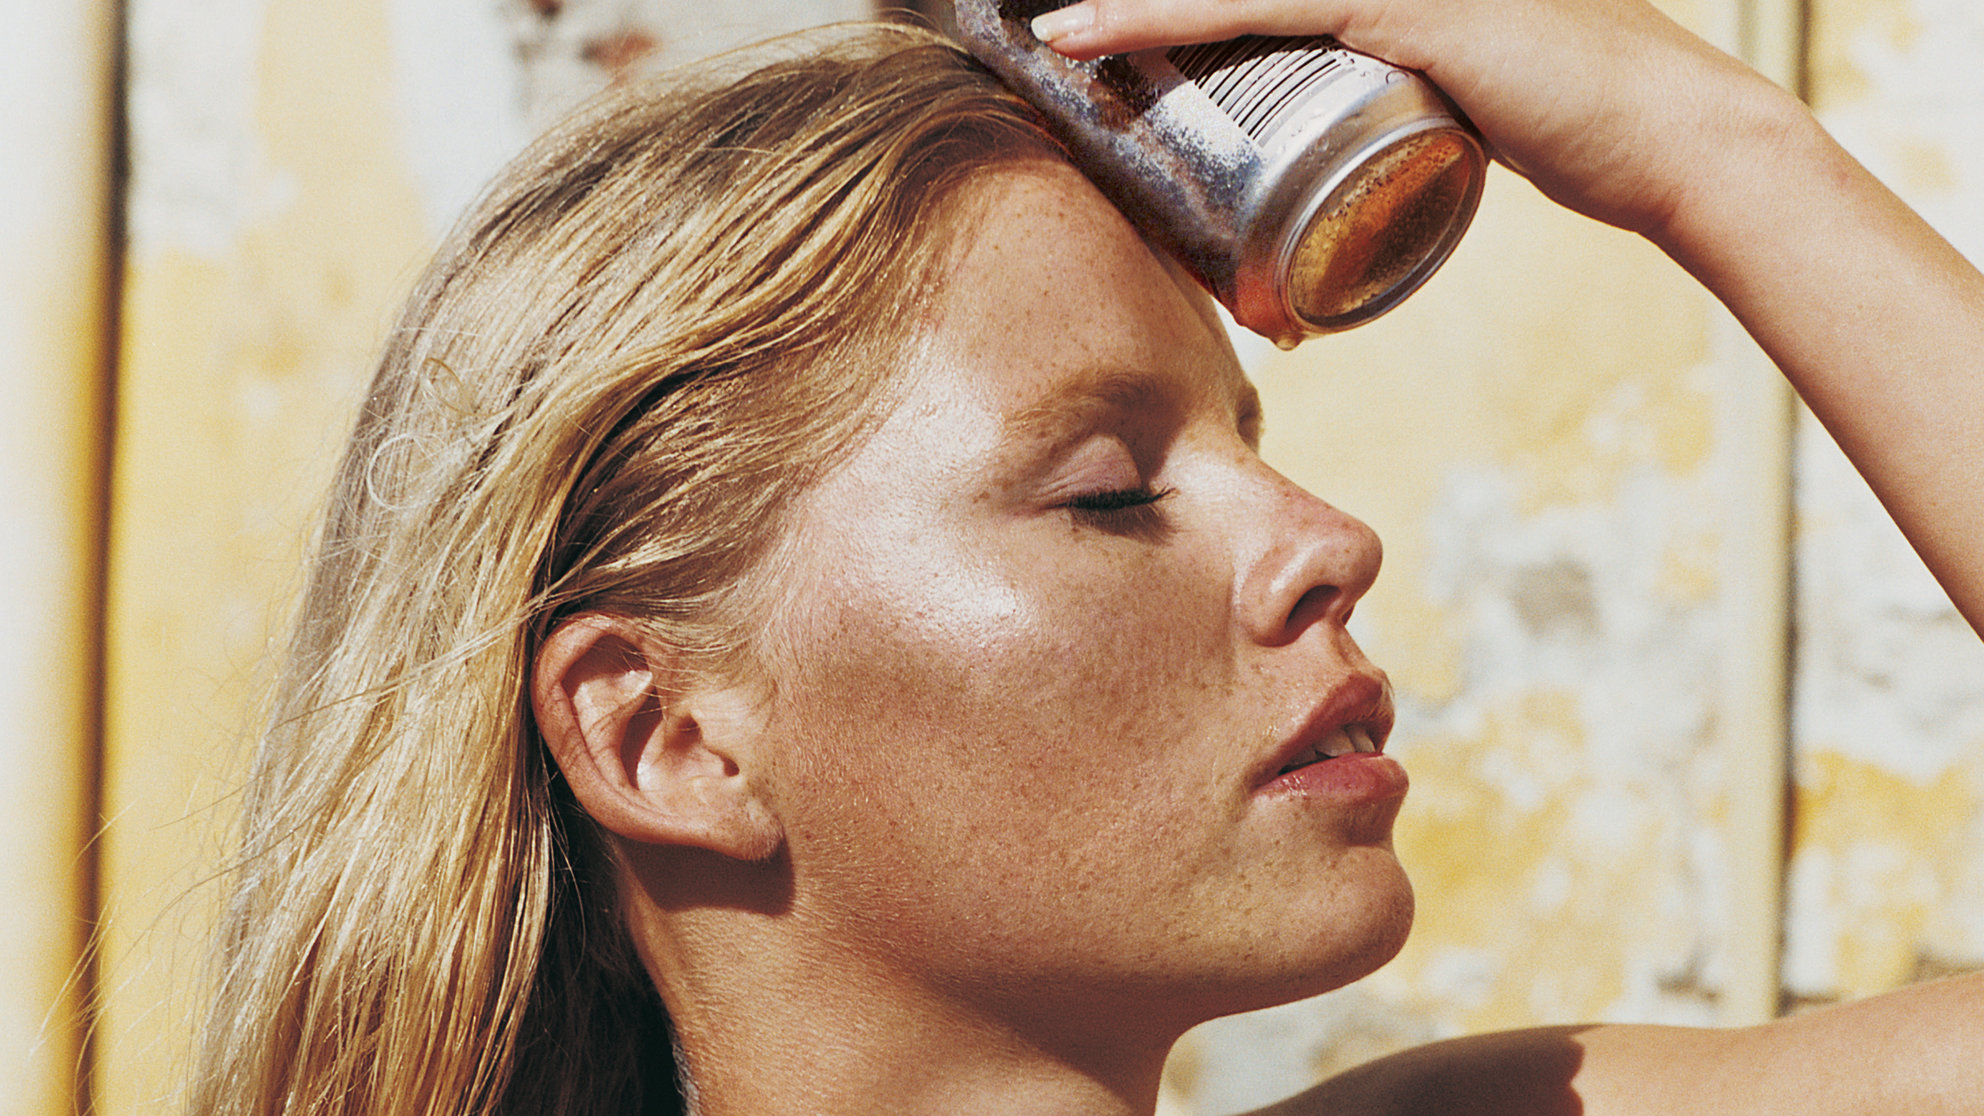 7 Medications That May Make You Extra Sensitive to Sun and Heat